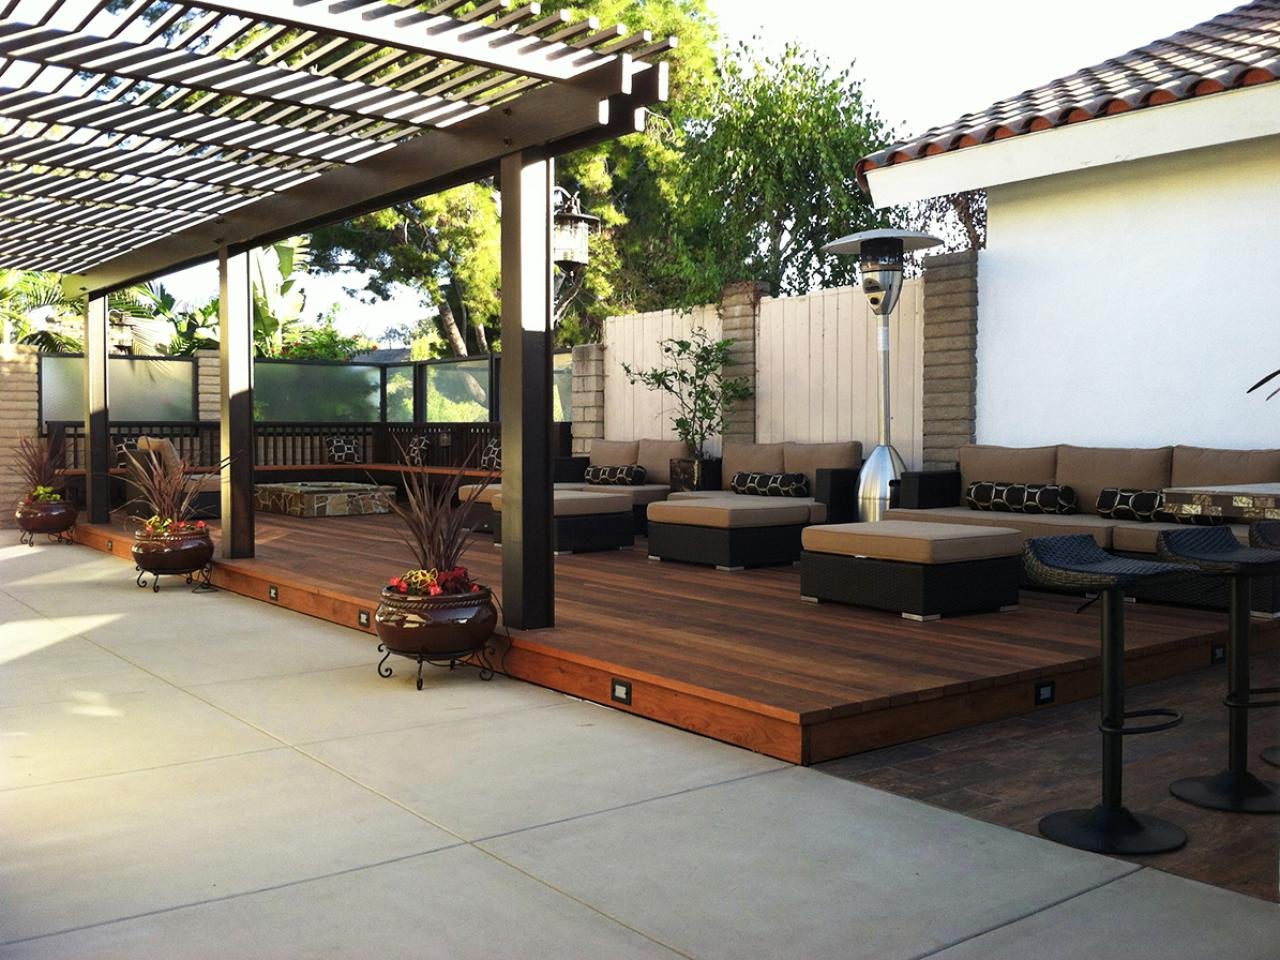 Deck design ideas outdoor spaces patio ideas decks for Backyard decks